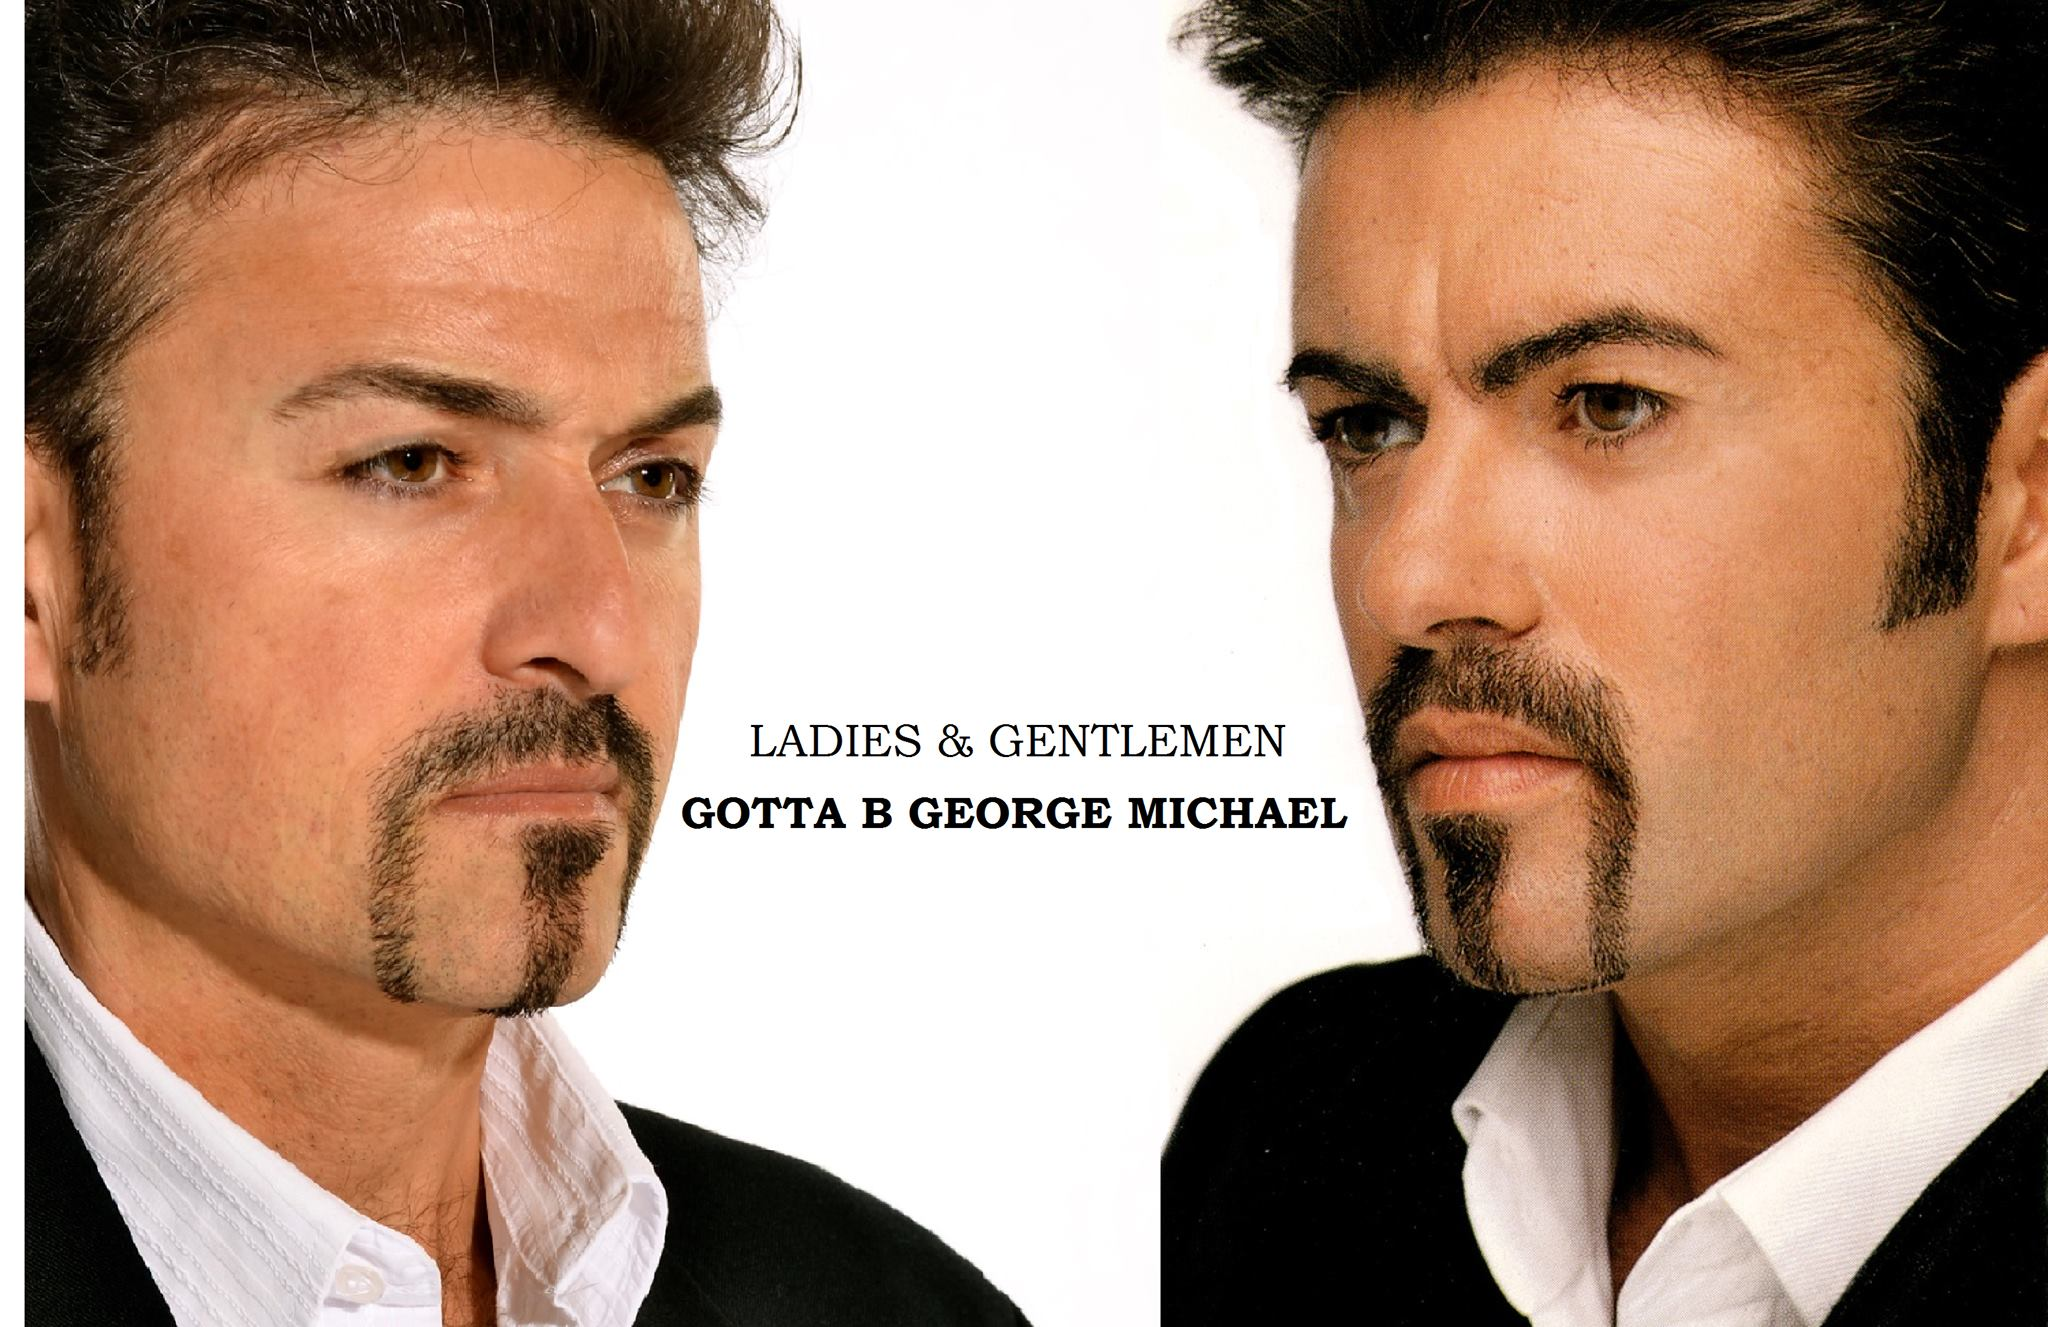 GOTTA B GEORGE MICHAEL